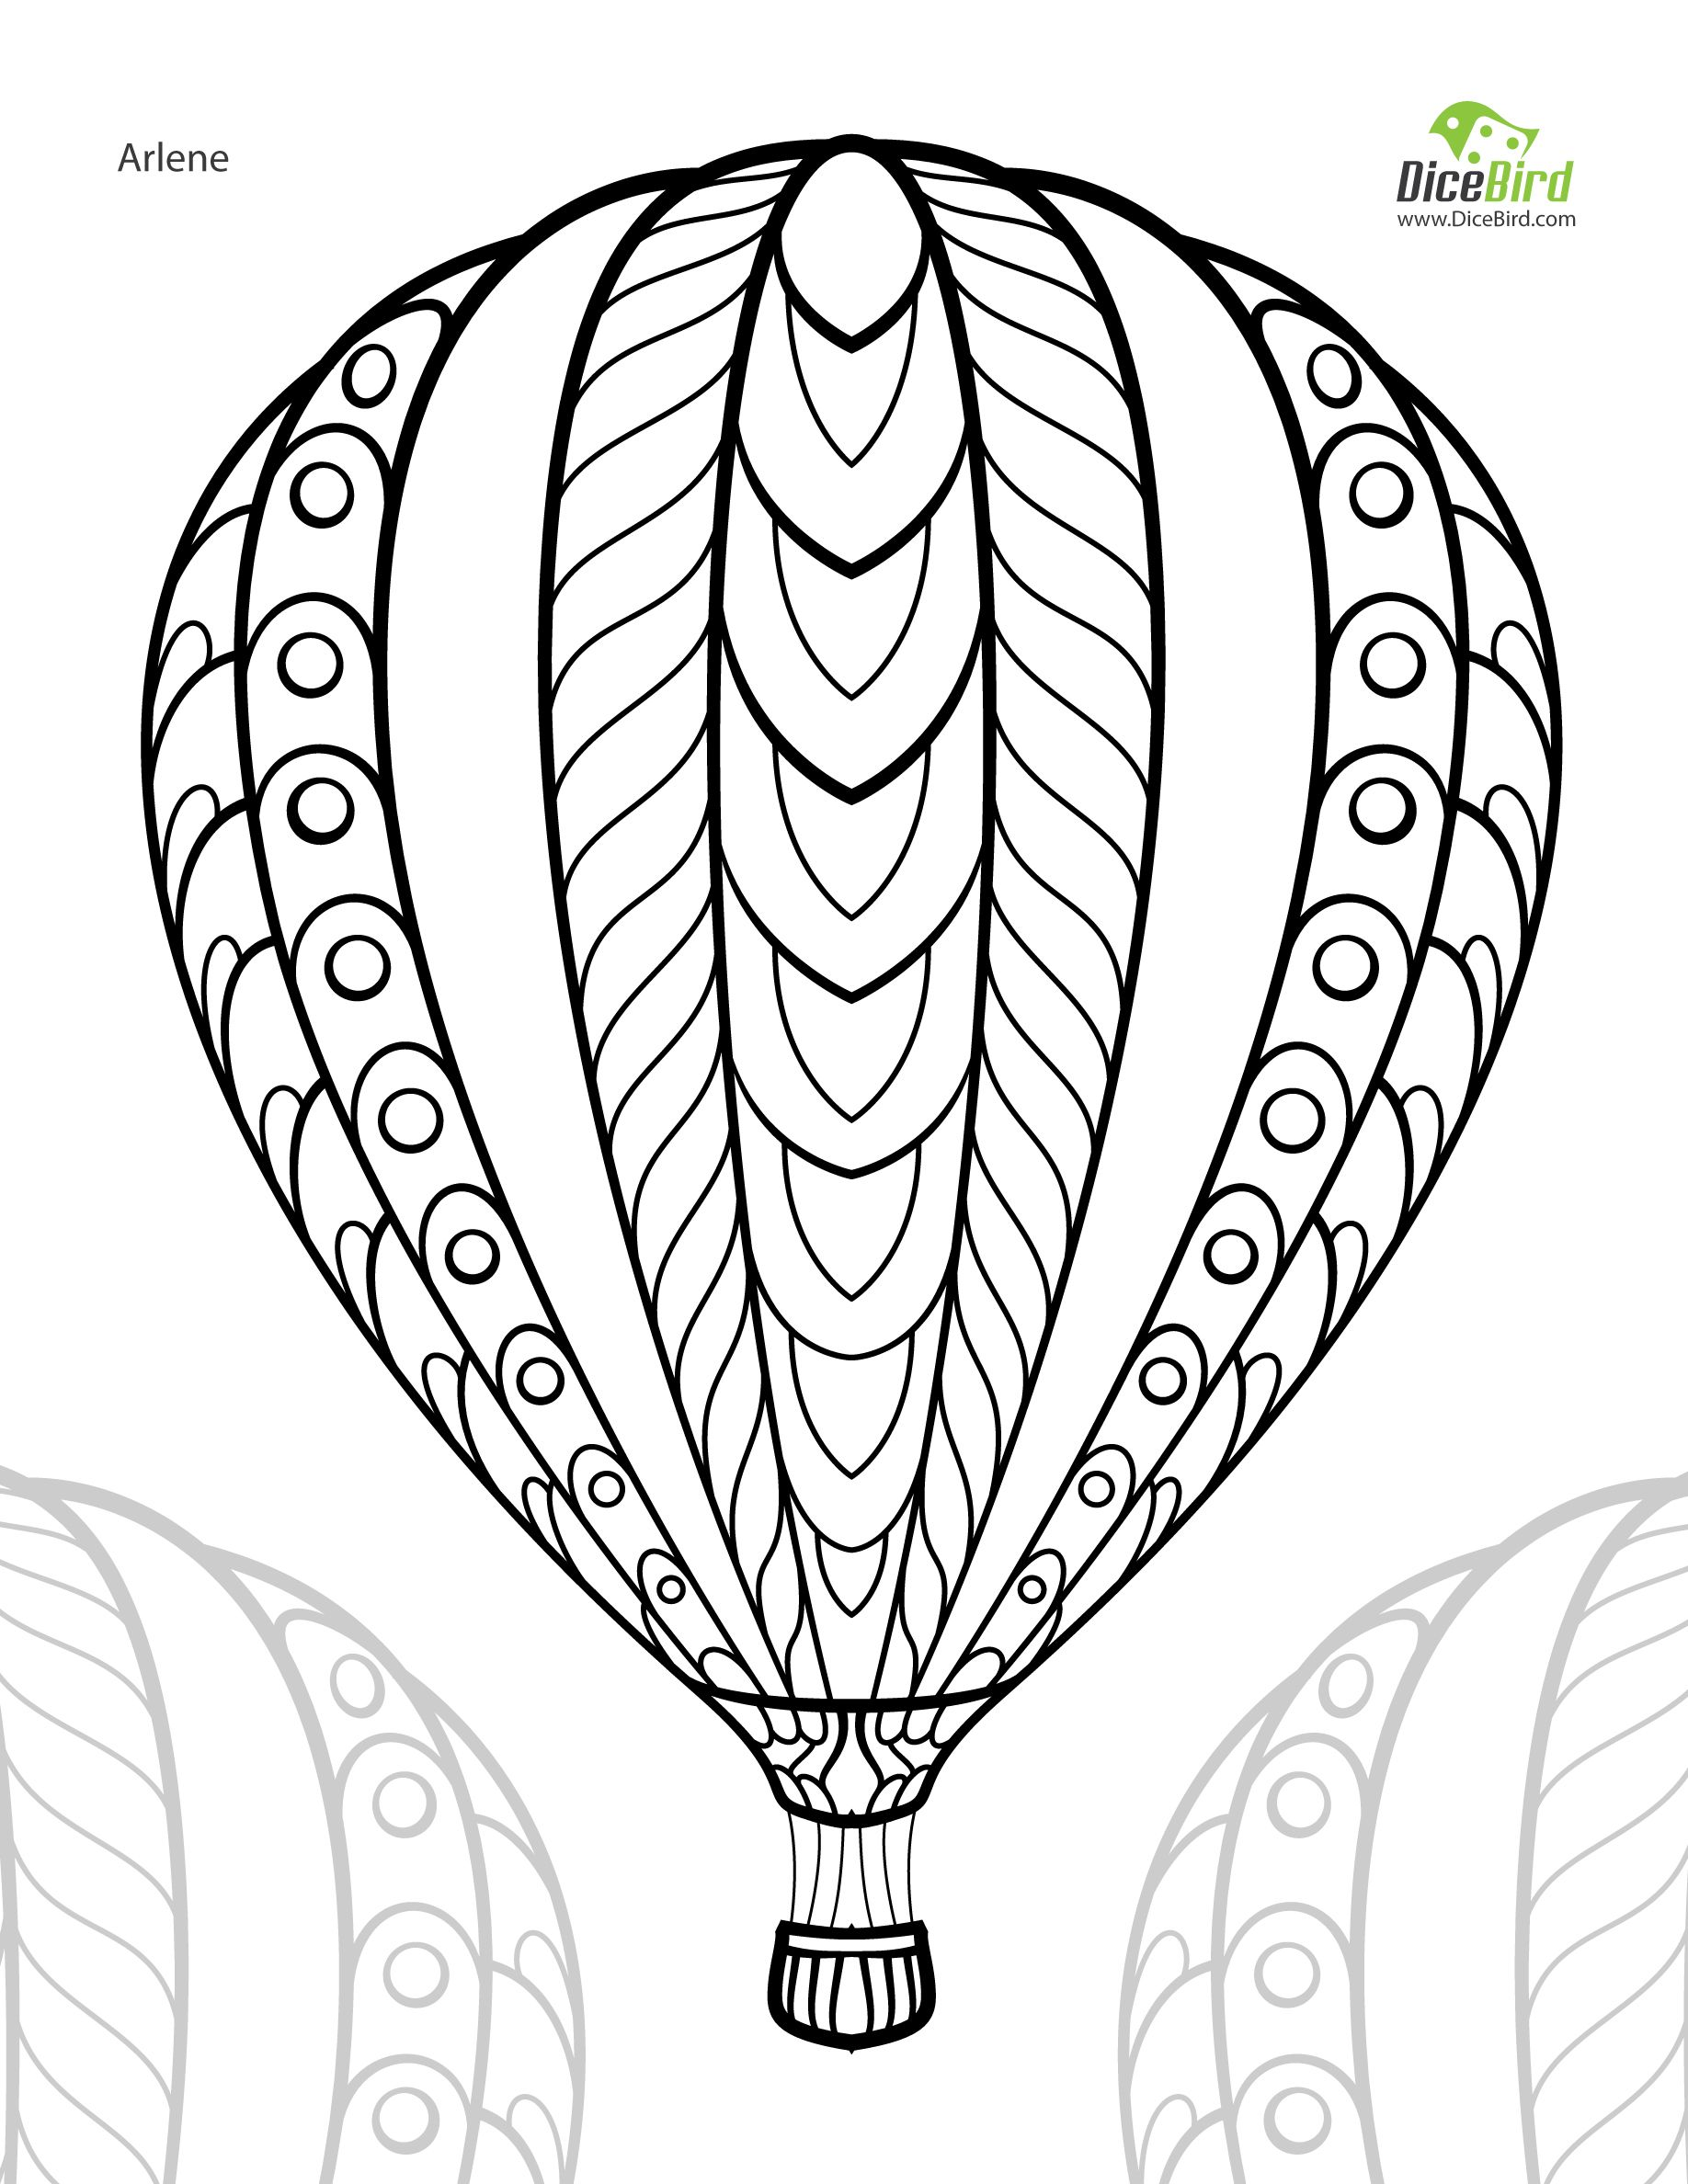 Dicebird Com Hot Air Balloon Drawing Balloon Template Mandala Coloring Pages